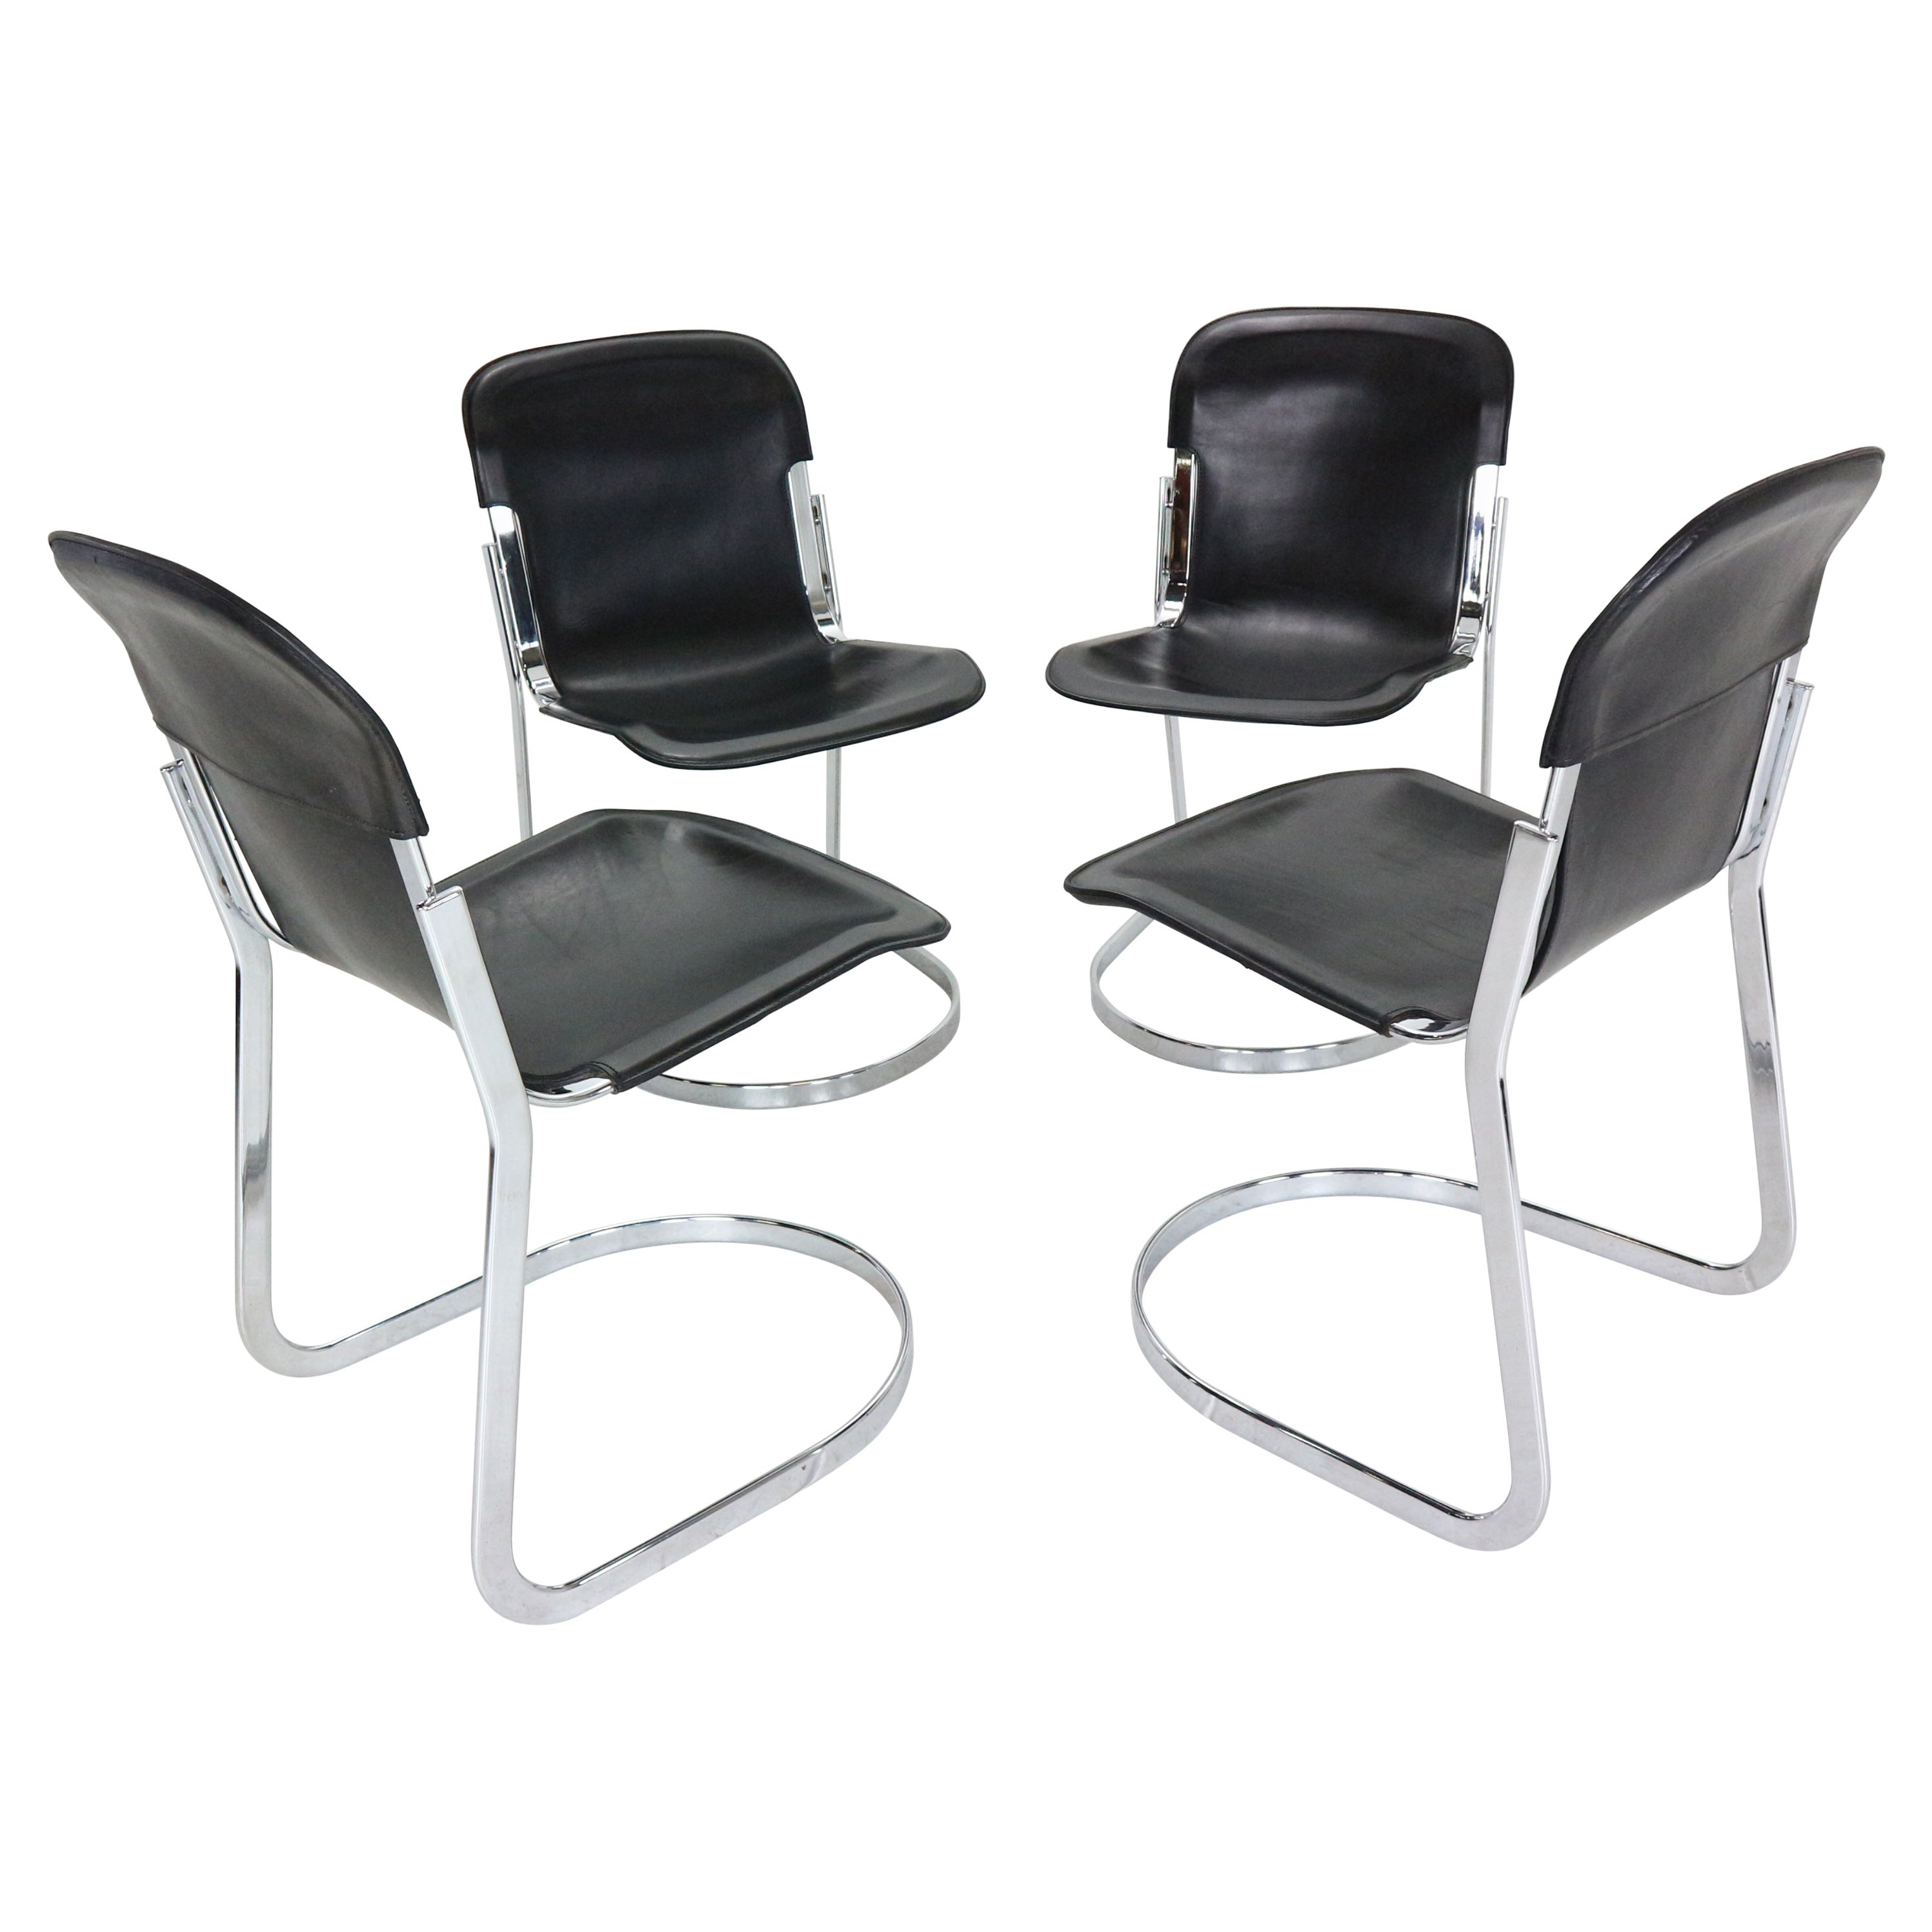 """Willy Rizzo Set of Black Leather Dining Chairs """"C2"""" For Cidue, 1970s, Italy"""